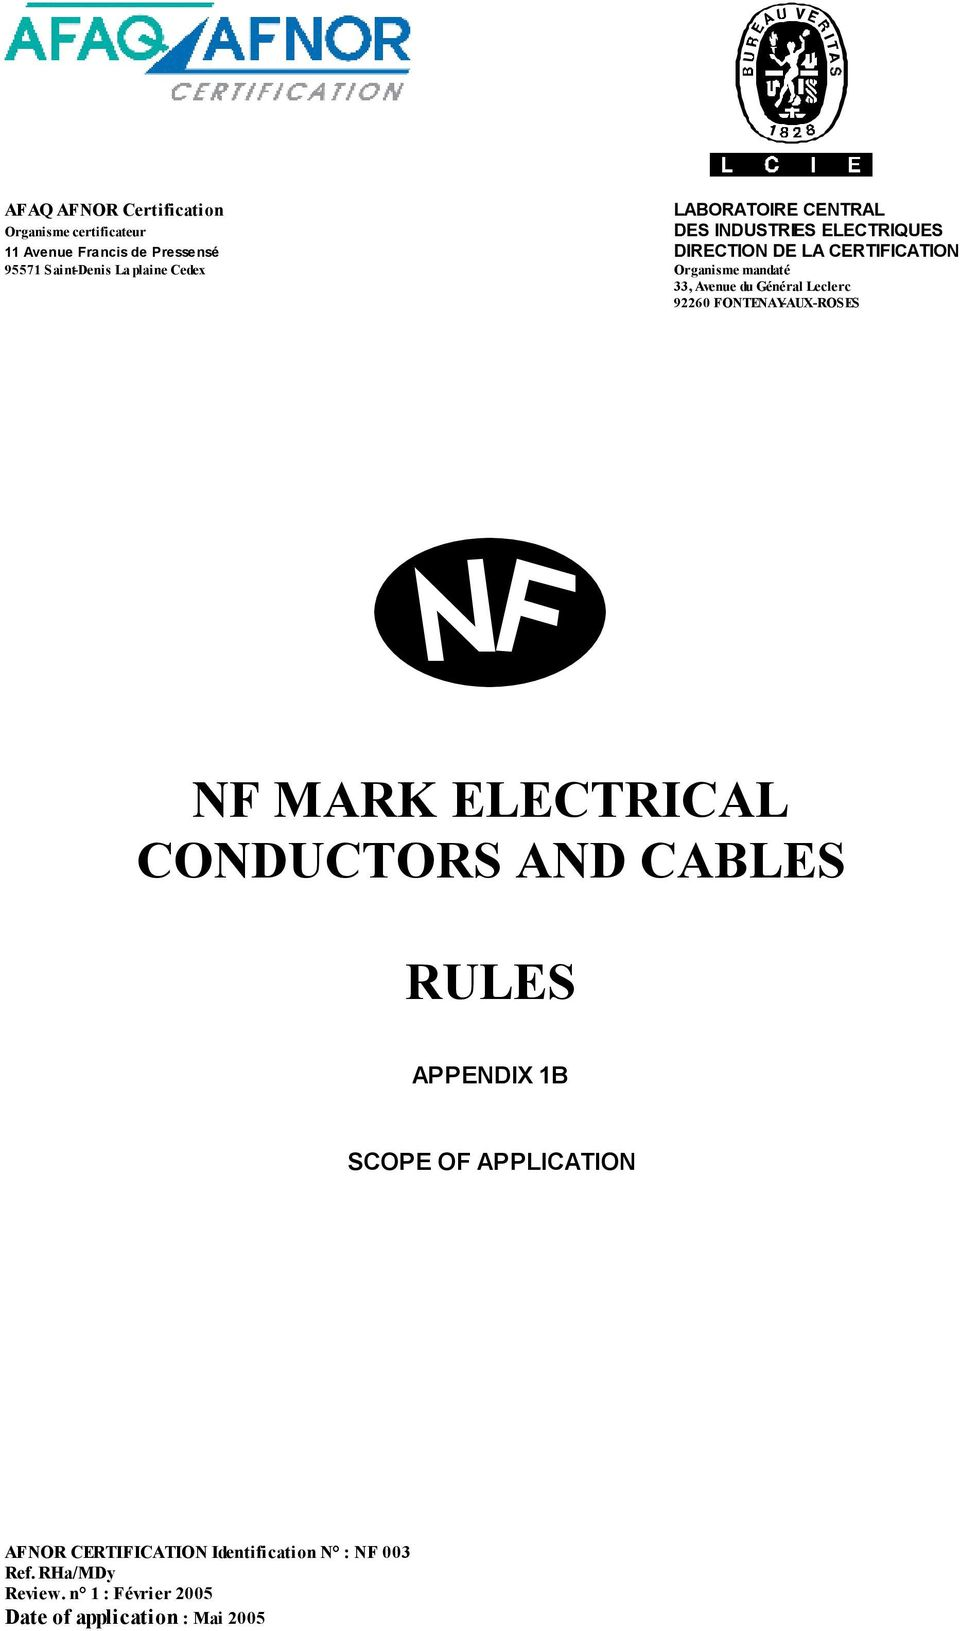 Leclerc 92260 FONTENAY-AUX-ROSES NF MARK E LE CTRICAL CONDUCTORS AND CAB LE S RULE S APPENDIX 1B SCOPE OF